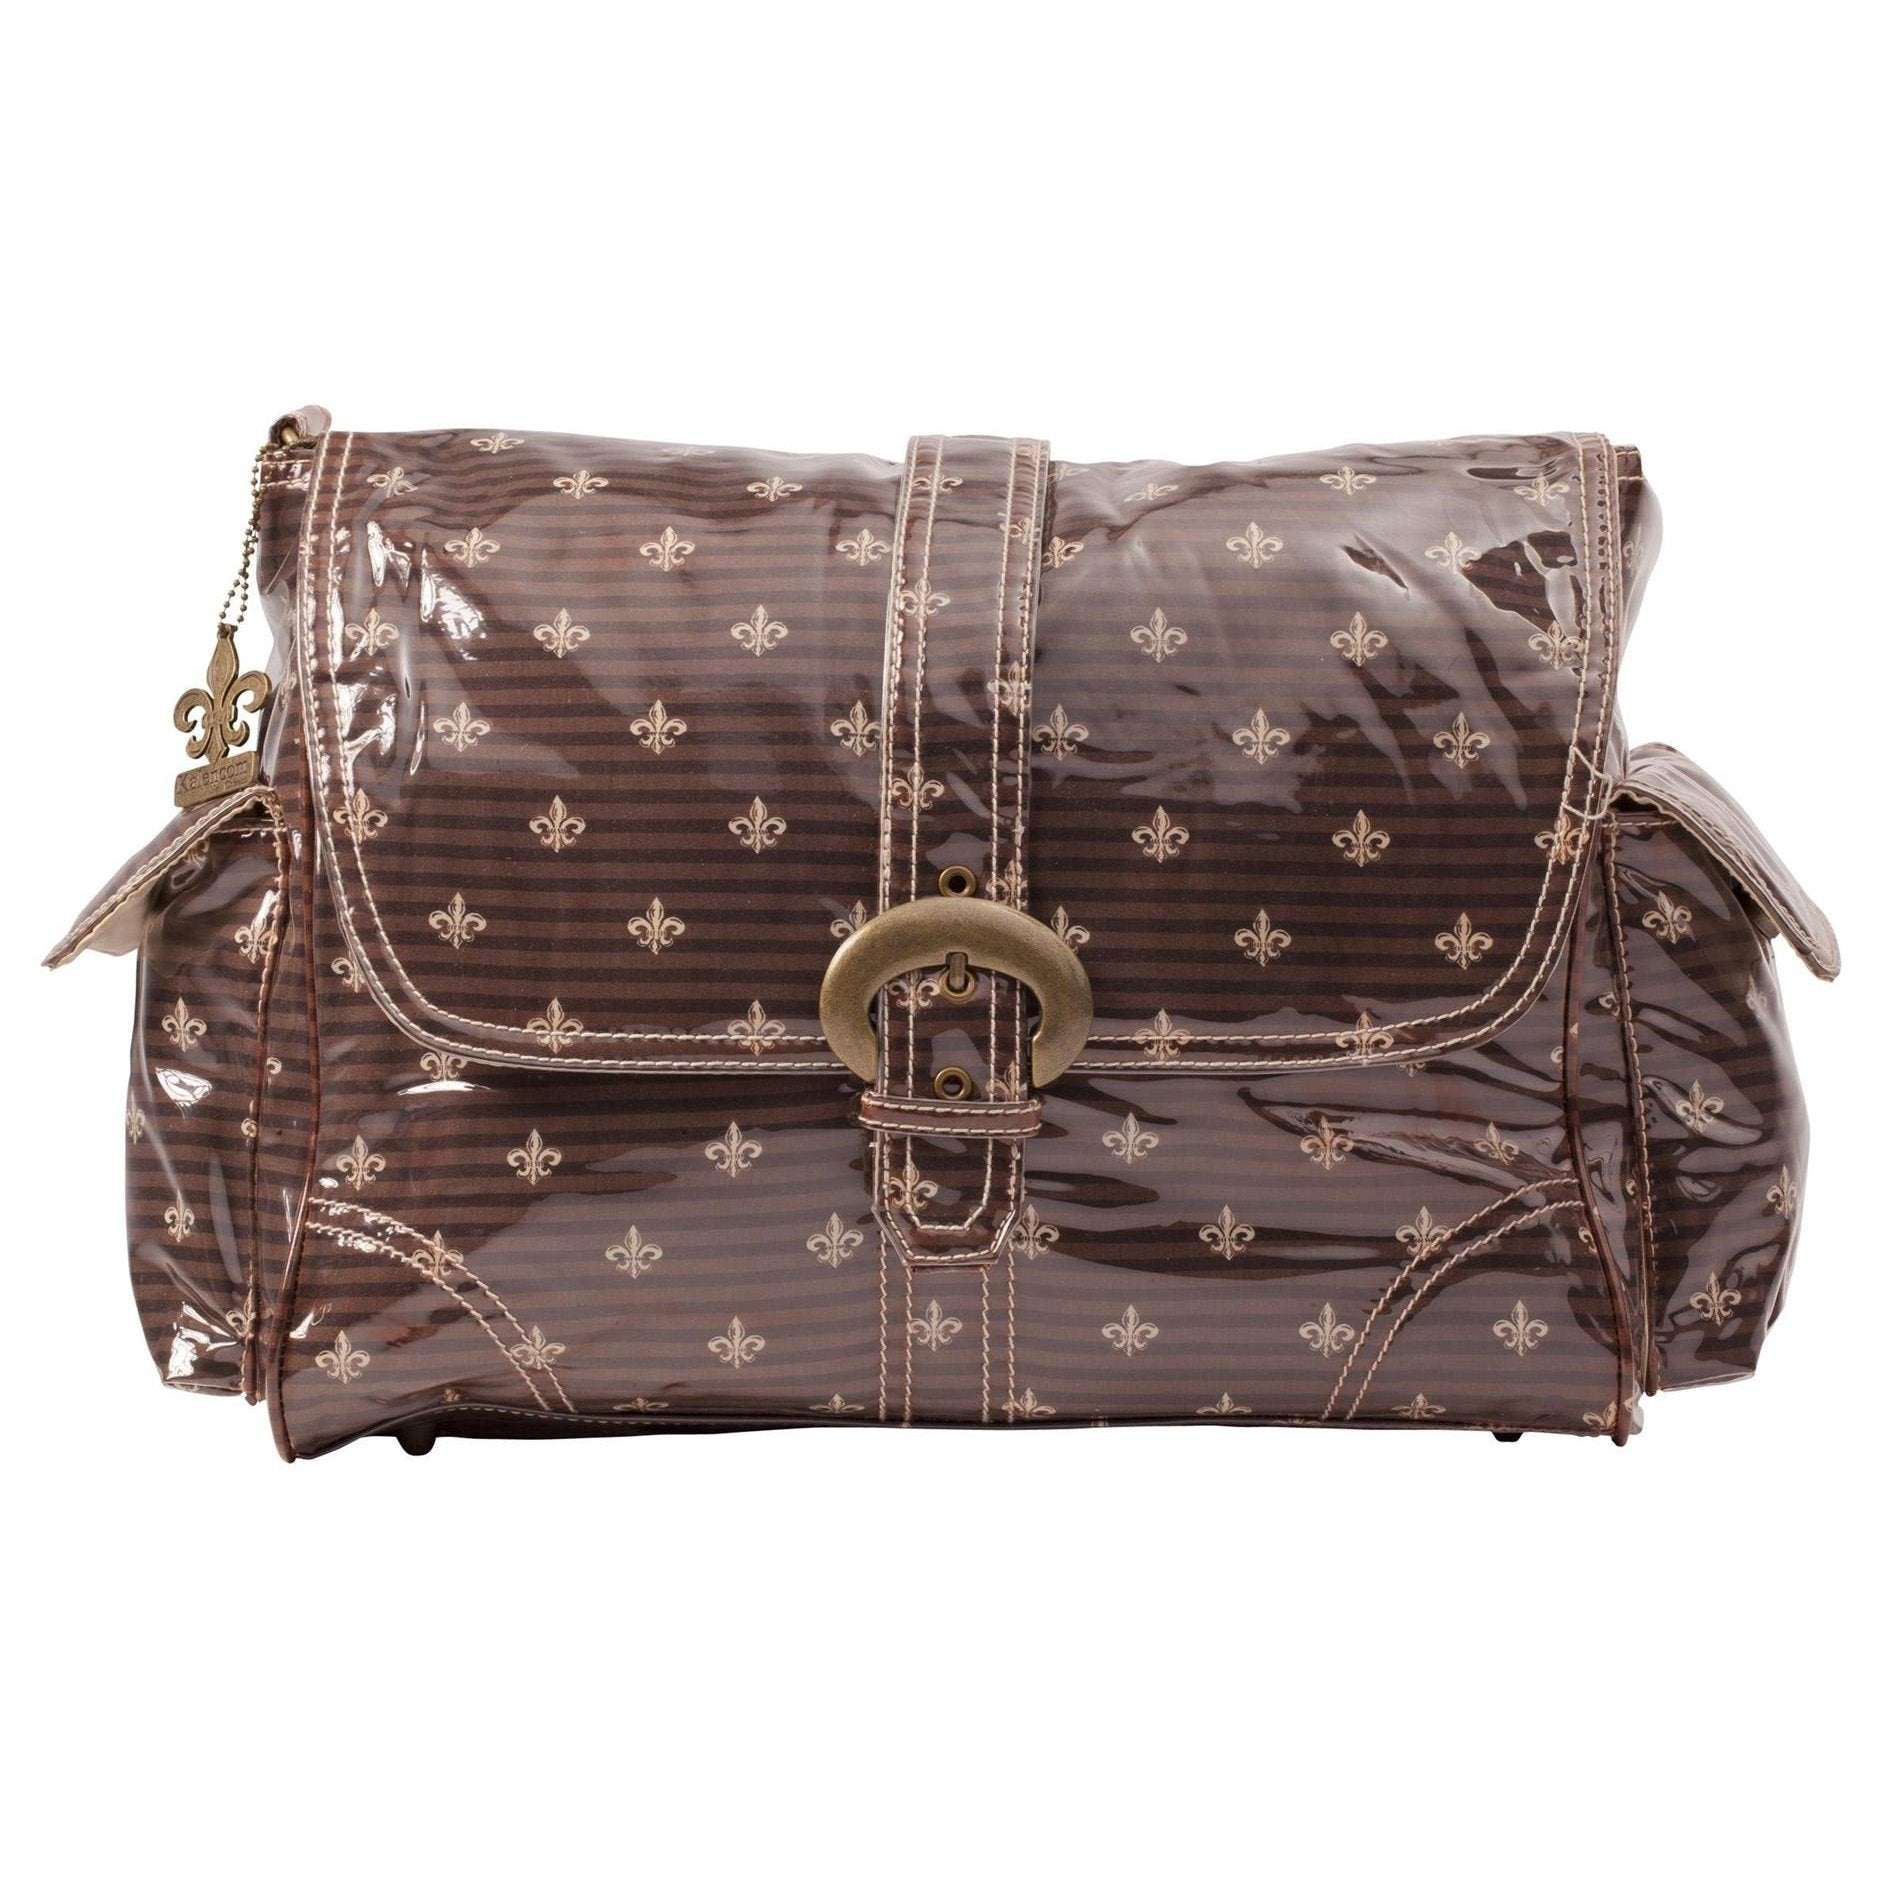 Fleur De Lis - Chocolate-Cream Laminated Buckle Diaper Bag | Style 2960 - Kalencom-Diaper Bags-Default-Jack and Jill Boutique